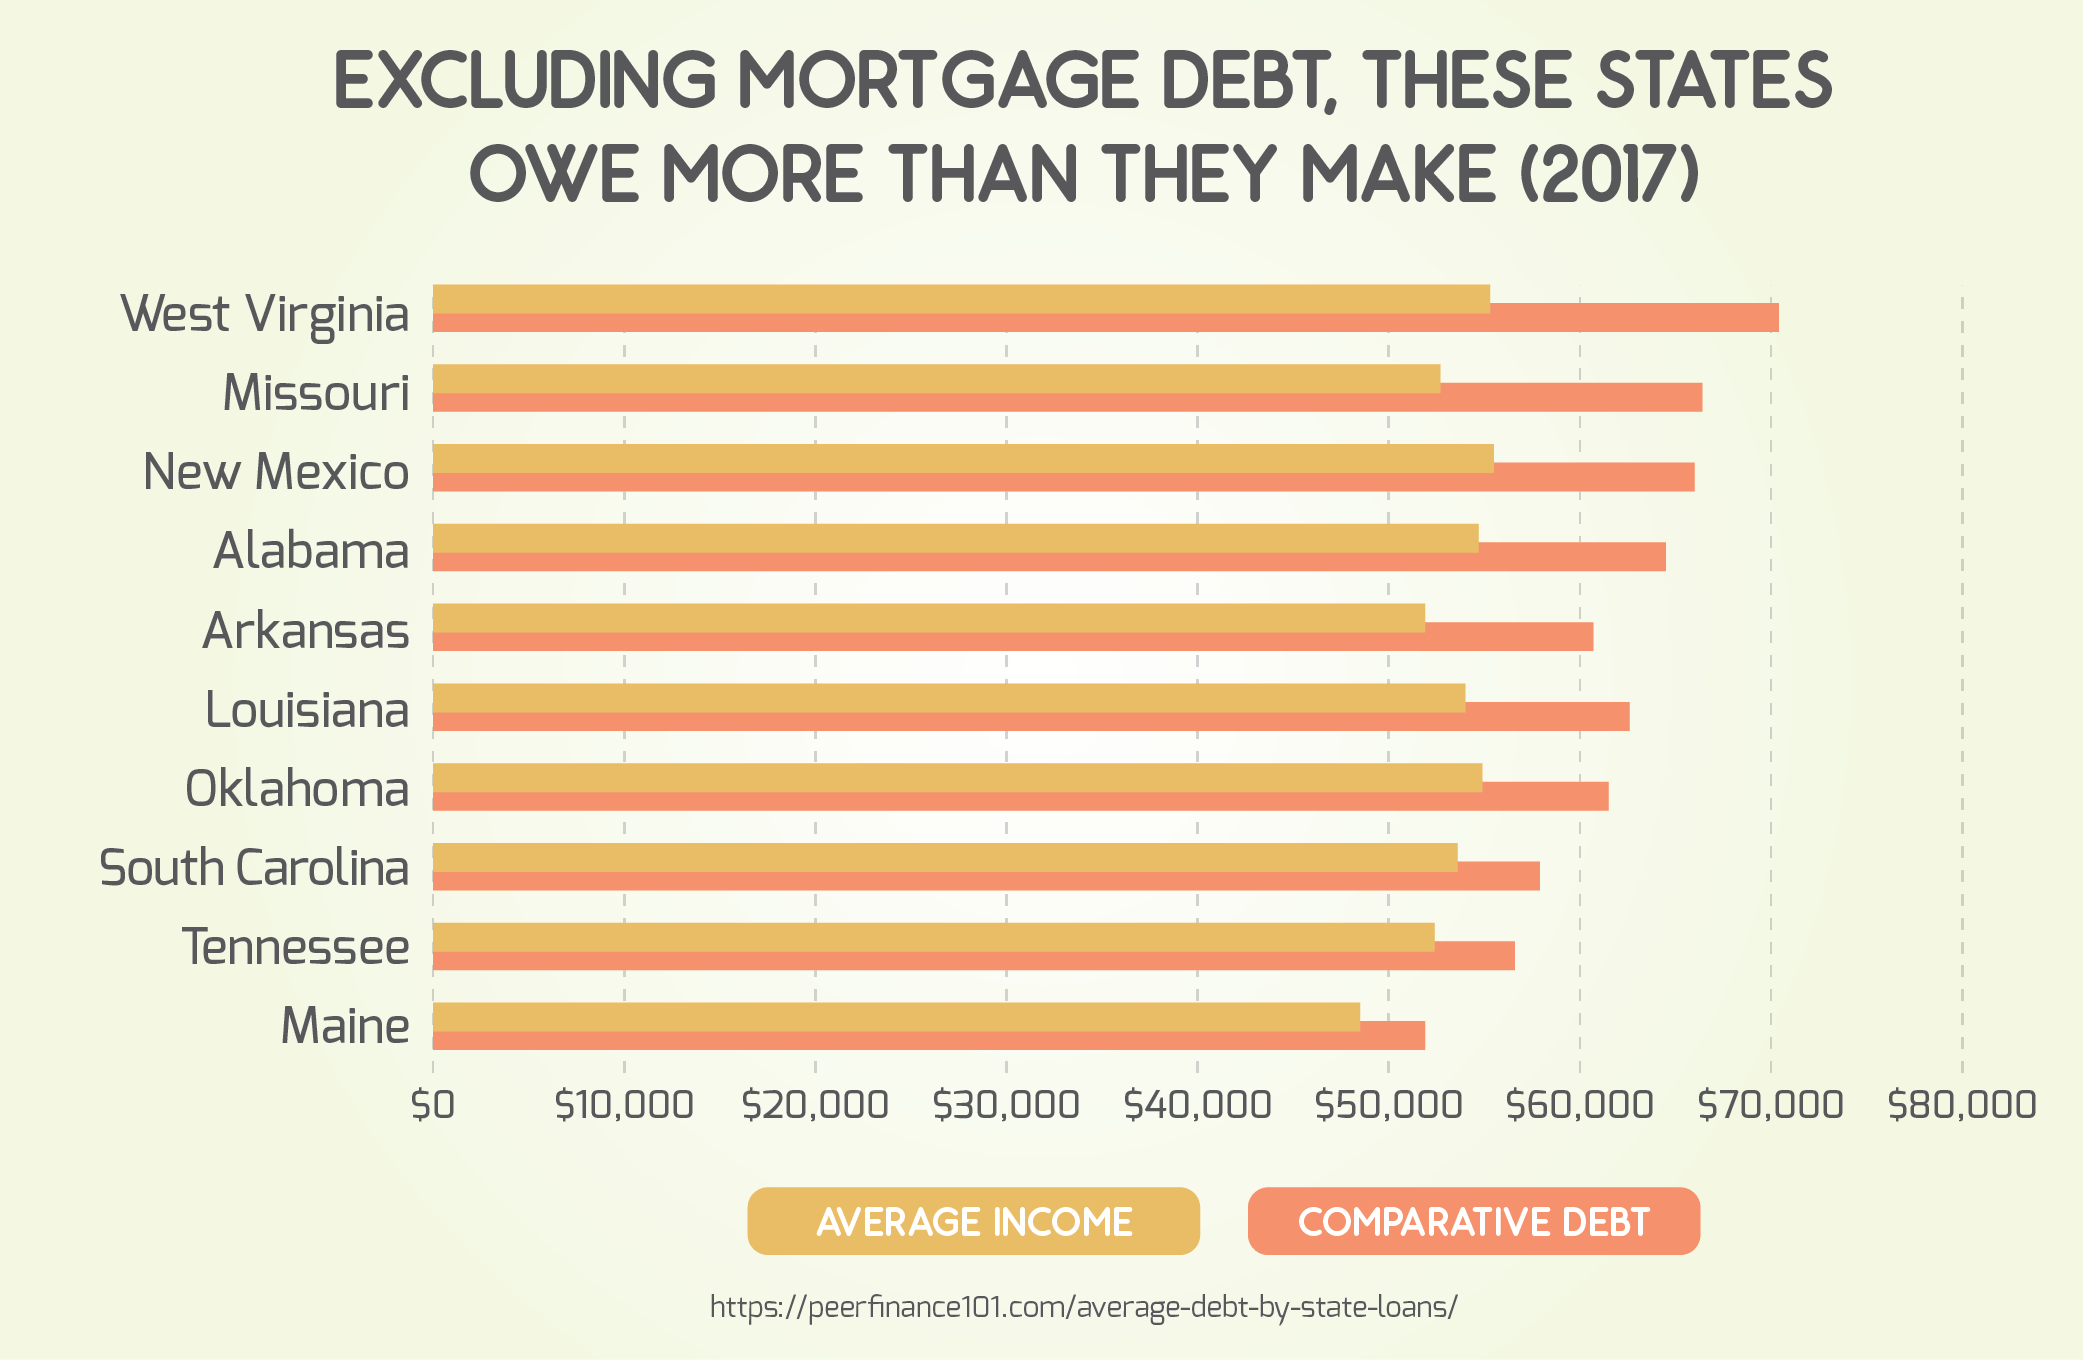 Excluding Mortgage Debt, These States Owe More Than They Make (2017)